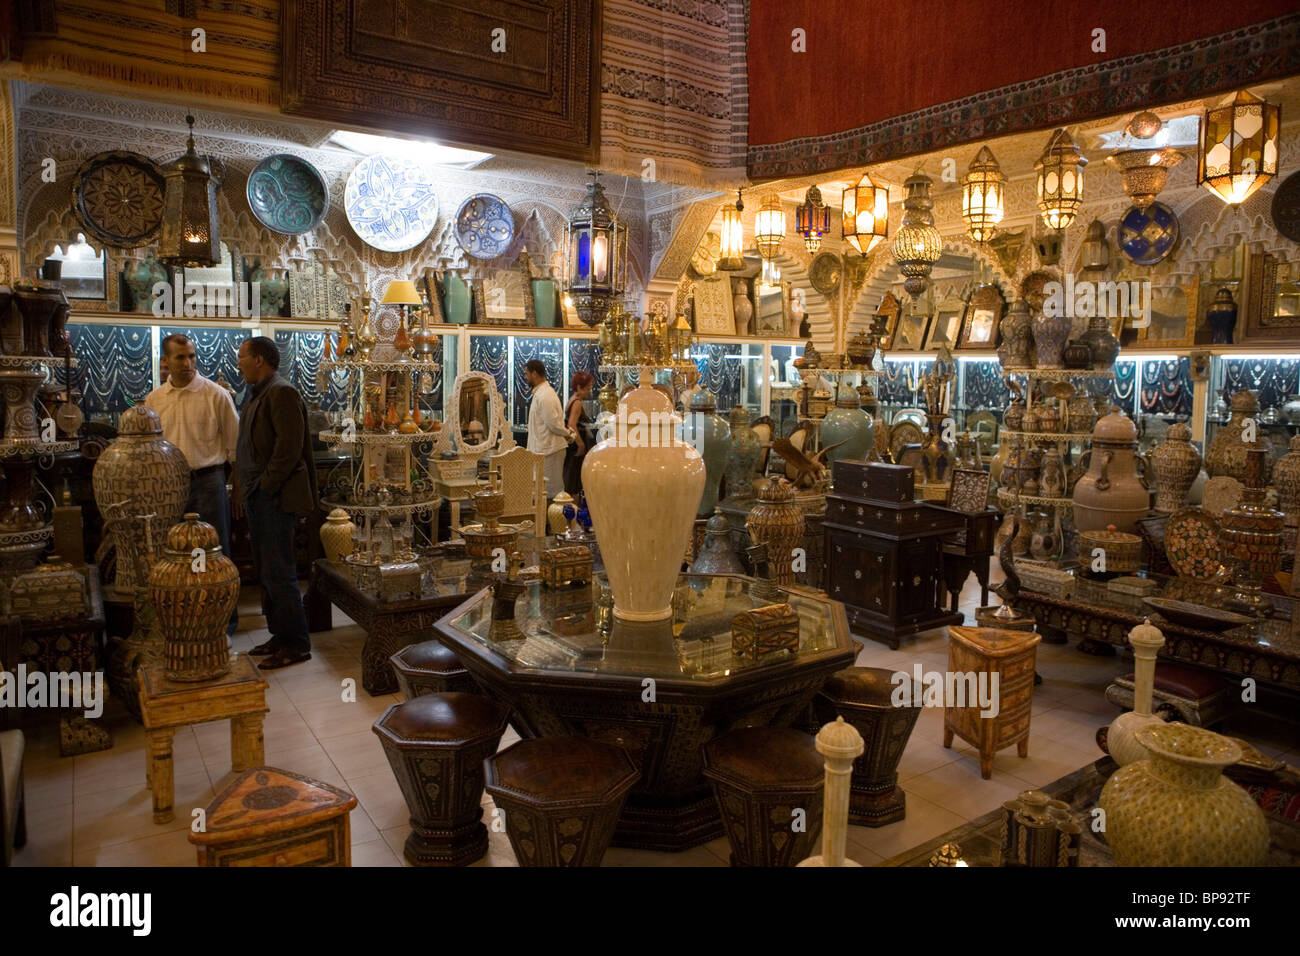 Vases and lamps for sale at Ensemble Artisanal Twizra Store, Marrakesh, Morocco, Africa - Stock Image